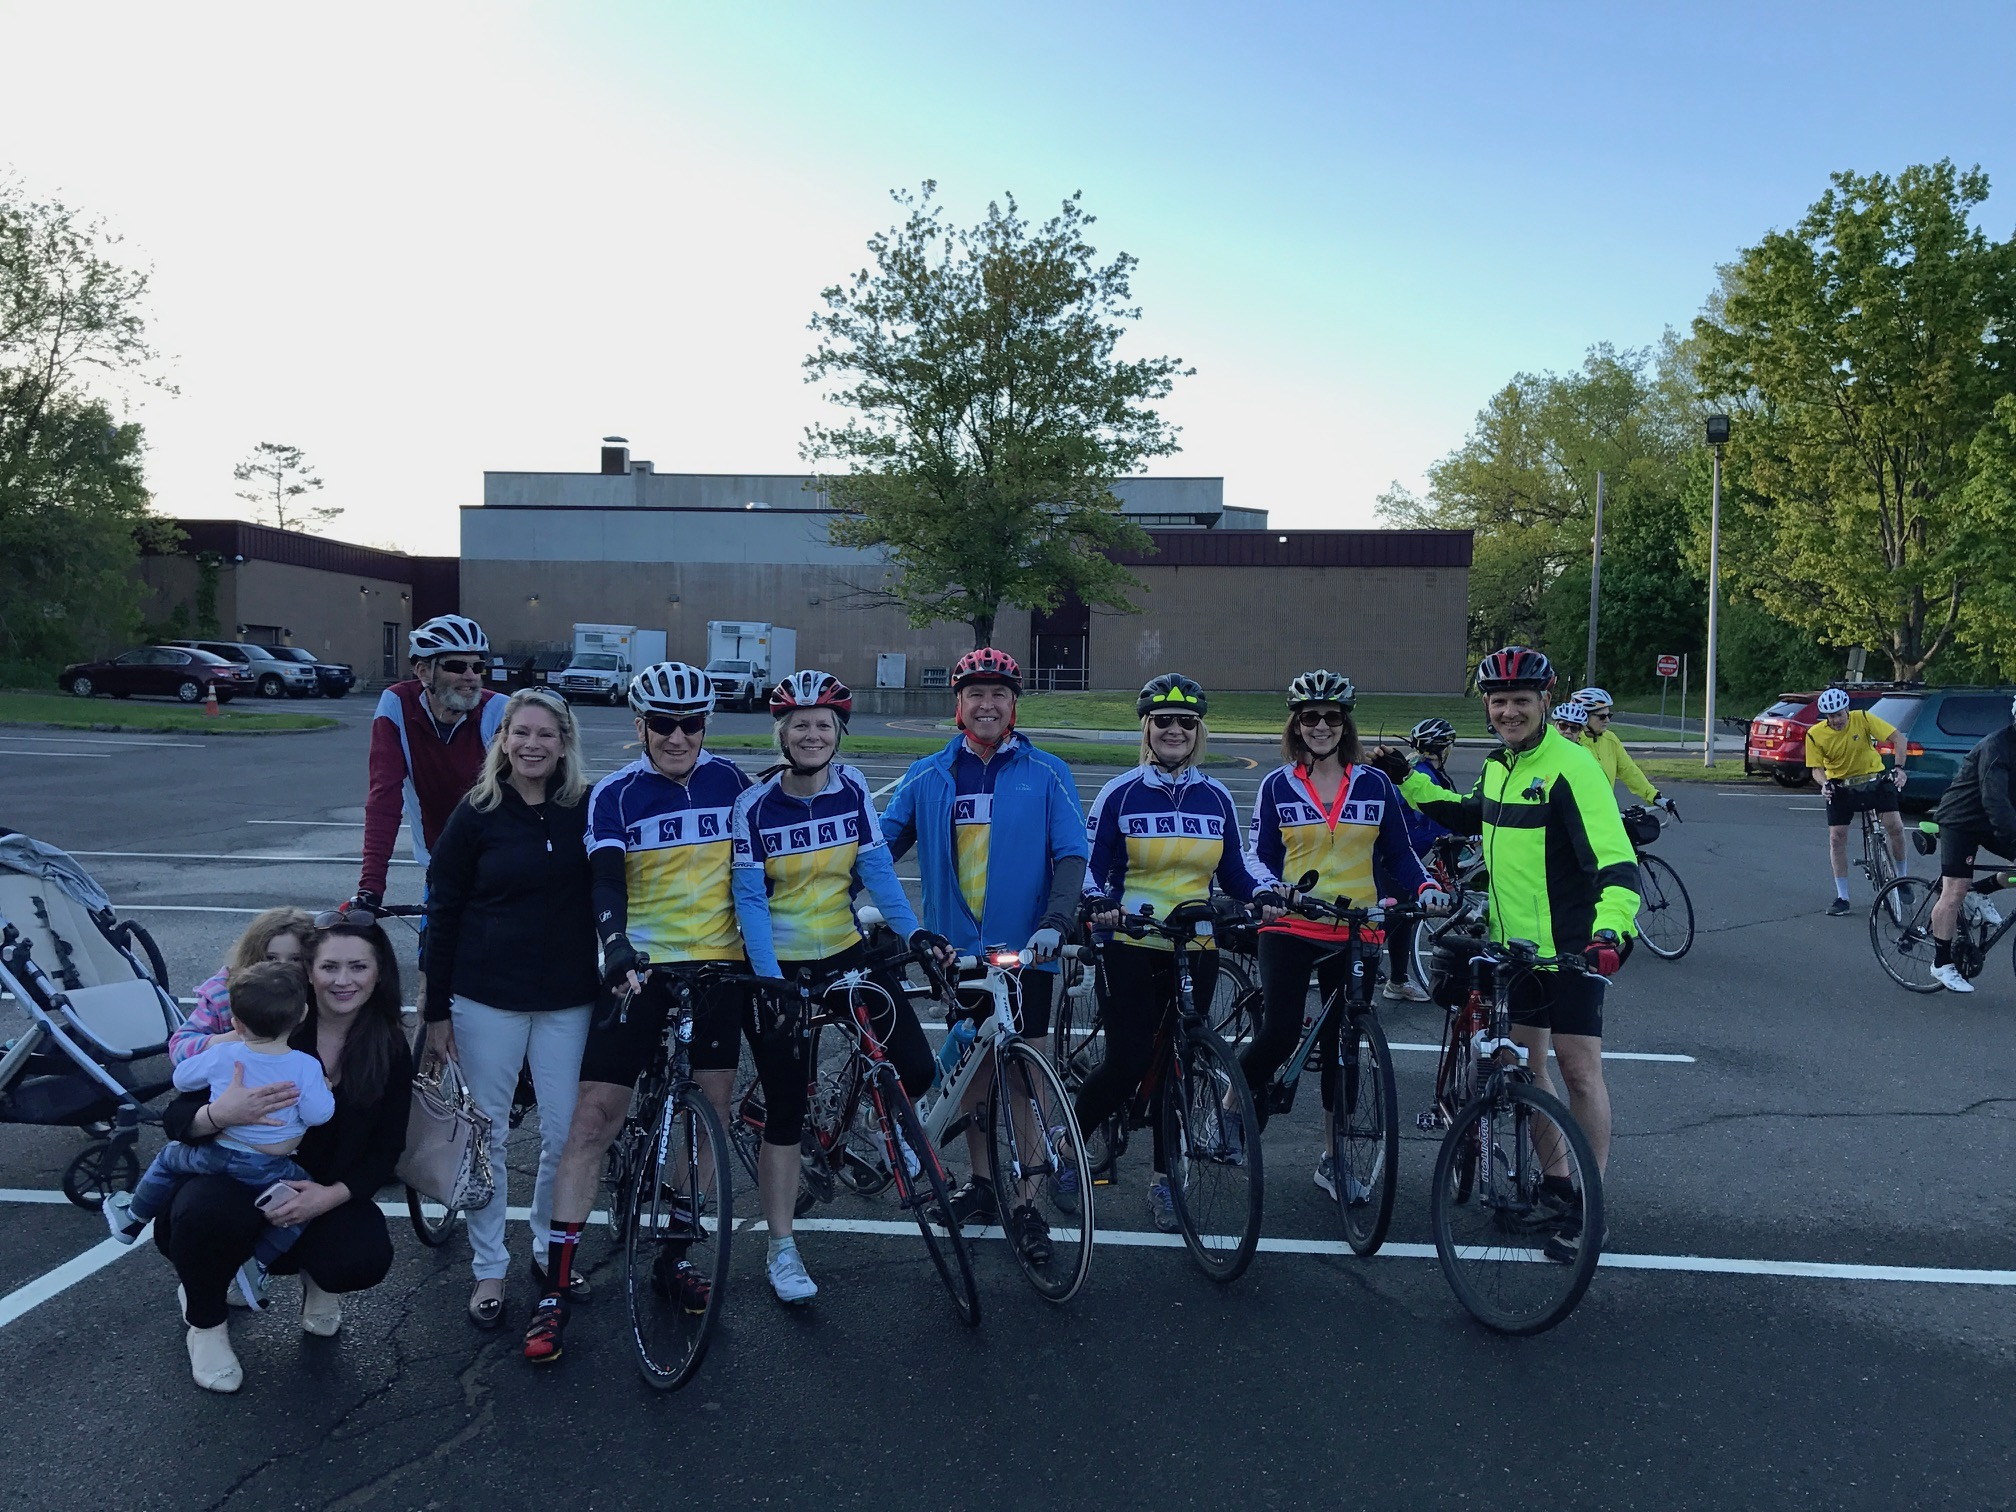 Cramer & Anderson attorneys and staff participated in the Danbury-Bethel Ride of Silence May 15 evening in honor of David Burke, a treasured Partner in the firm who died from his injuries after a tragic cycling accident in March 2016. Attorney Burke's widow, June Anne, joined the group, along with the couple's daughter Alexandra and her two children. Riders included Attorneys Ken Taylor, John Tower, Kim Nolan, and Lorry Schiesel, with her husband, Dan, as well as staff members Jeremy Ruman and Denice Hull.